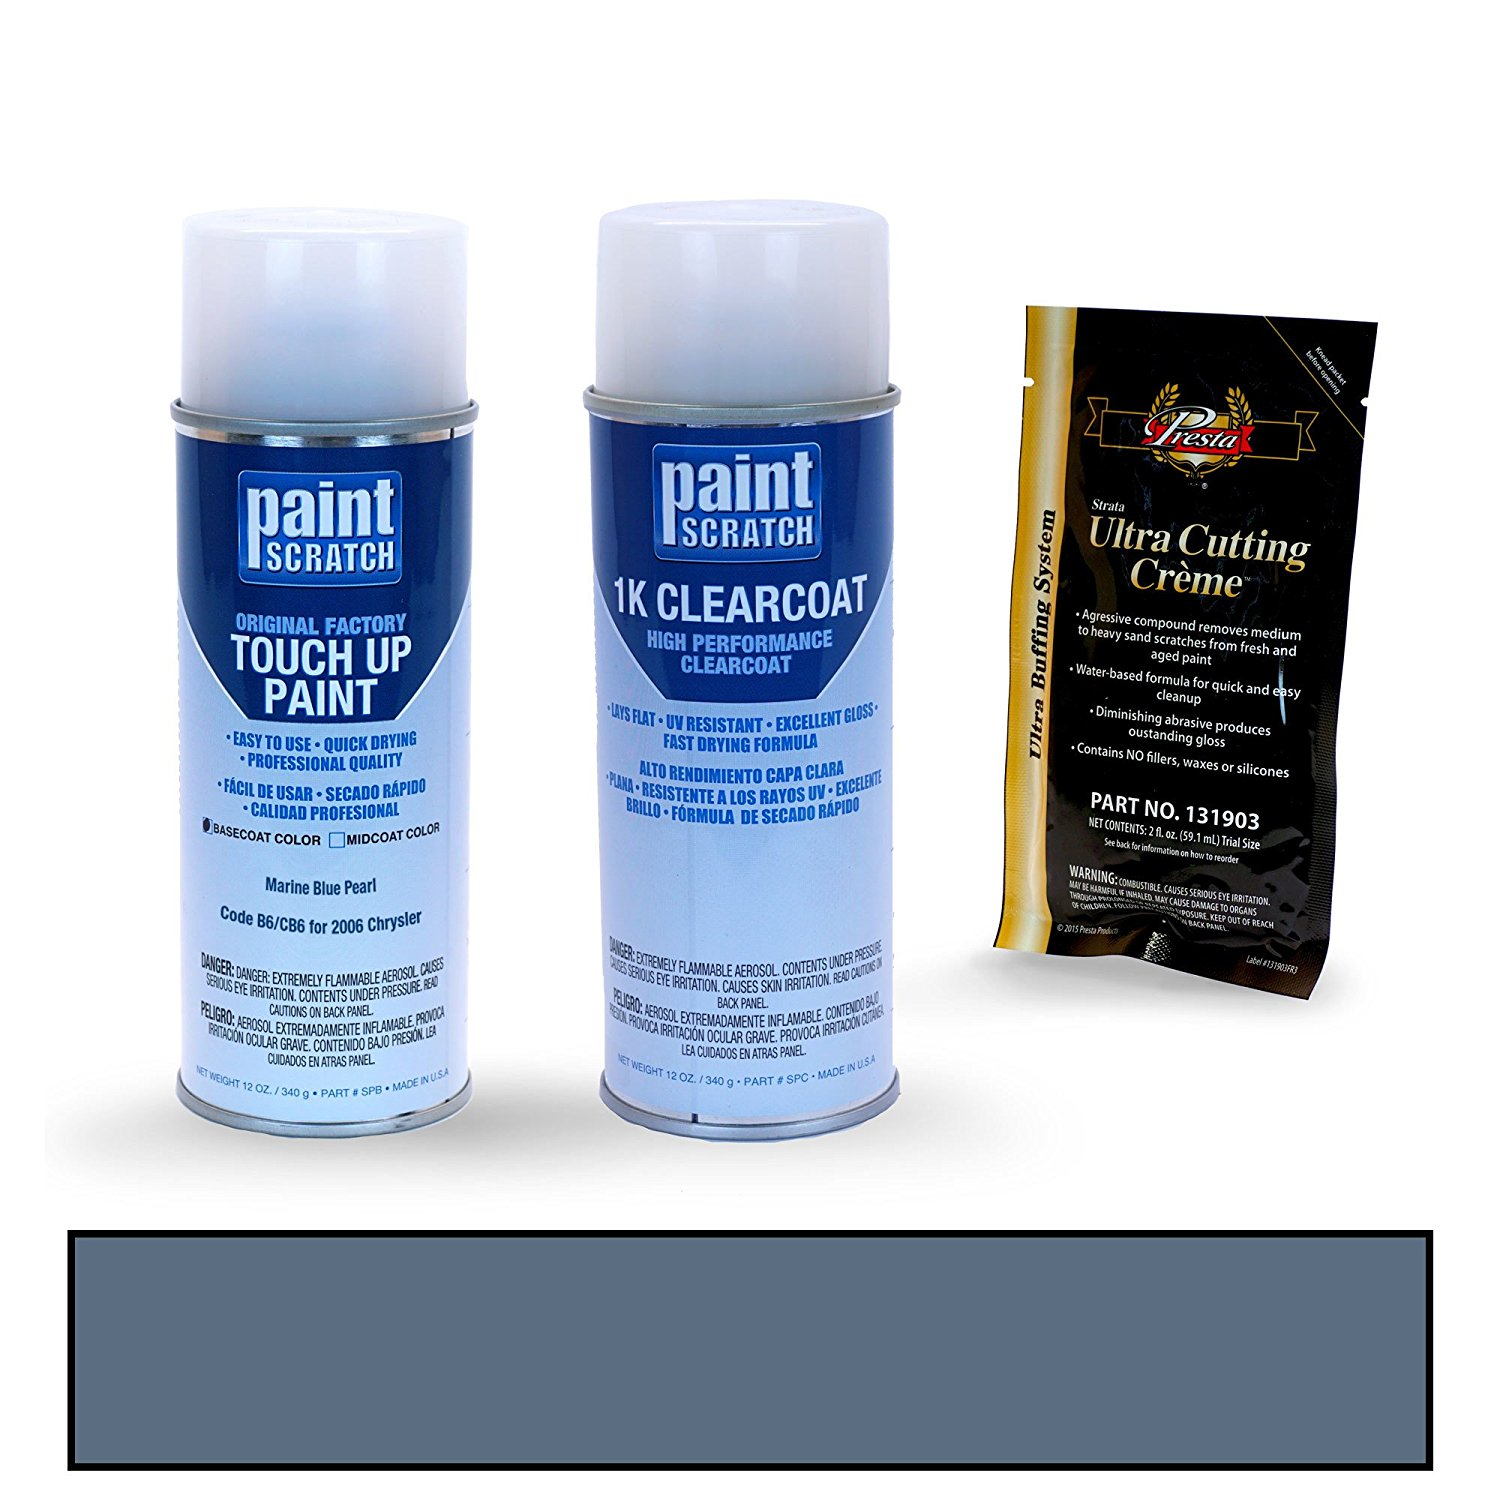 Cheap dupont marine paint color chart find dupont marine paint get quotations 2006 chrysler pt cruiser marine blue pearl b6cb6 touch up paint spray can kit nvjuhfo Choice Image